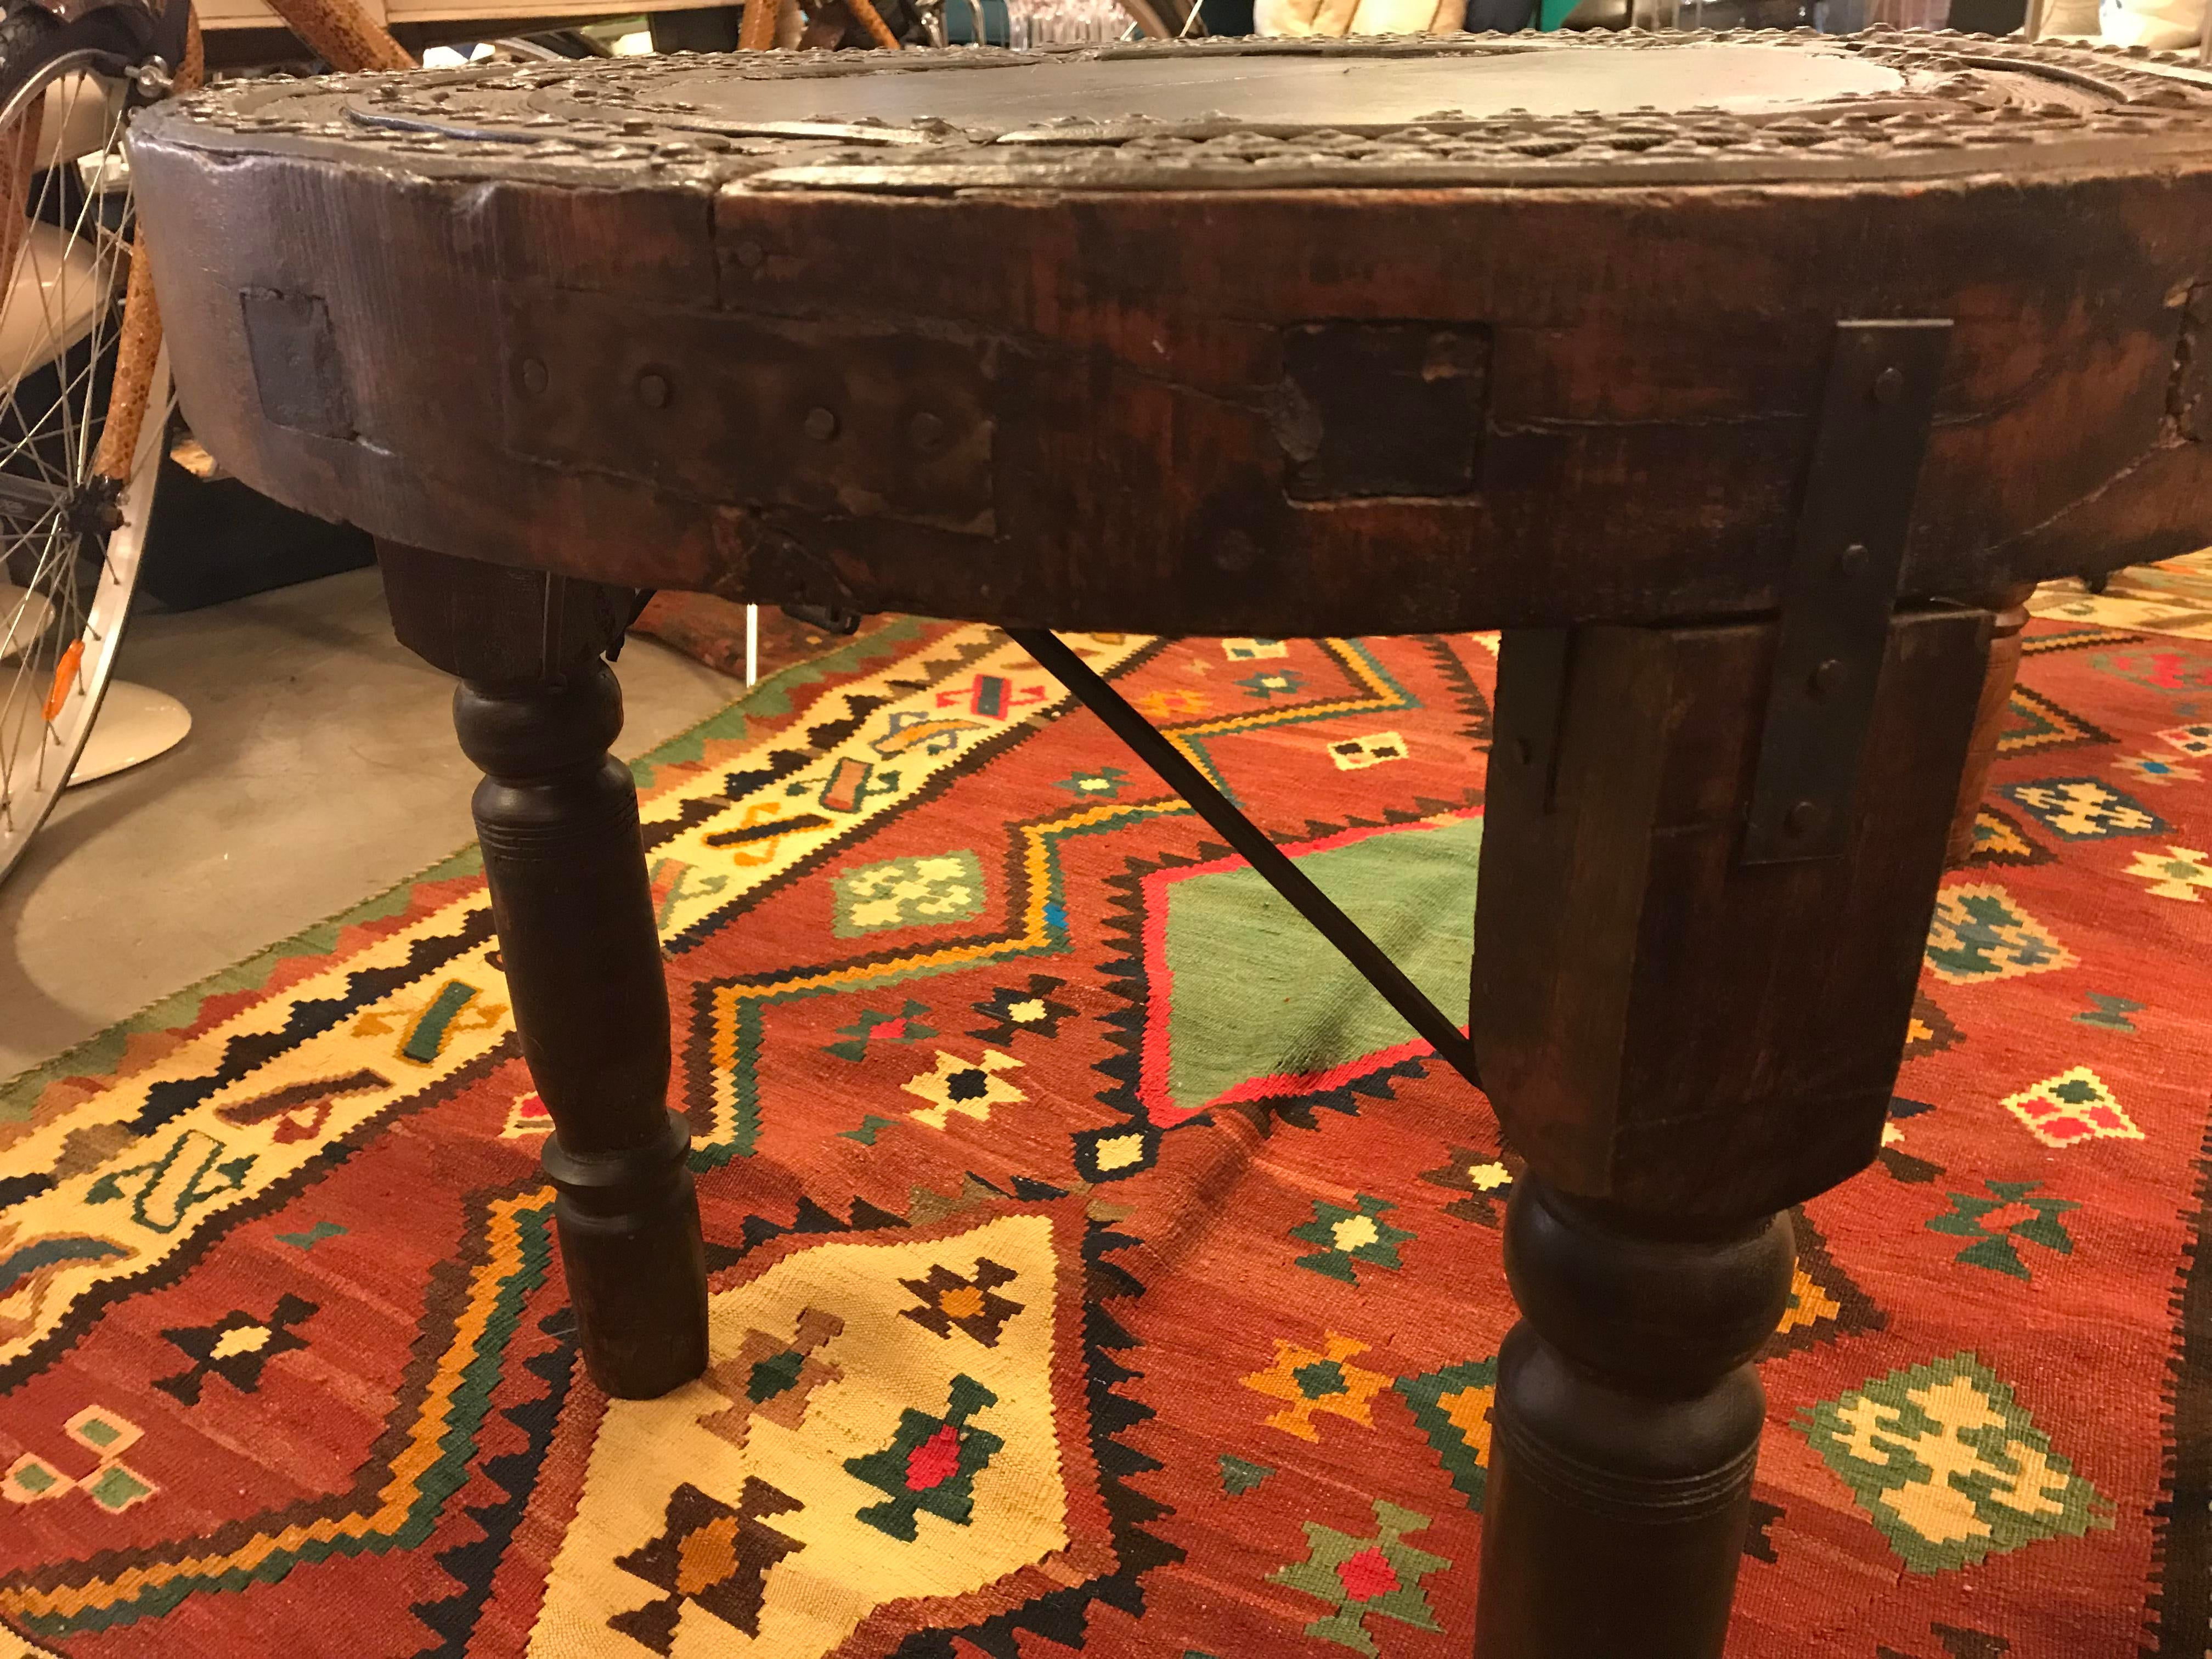 Antique Indonesian Wagon Wheel, Made Into A Side Table, Large For Sale In  Miami